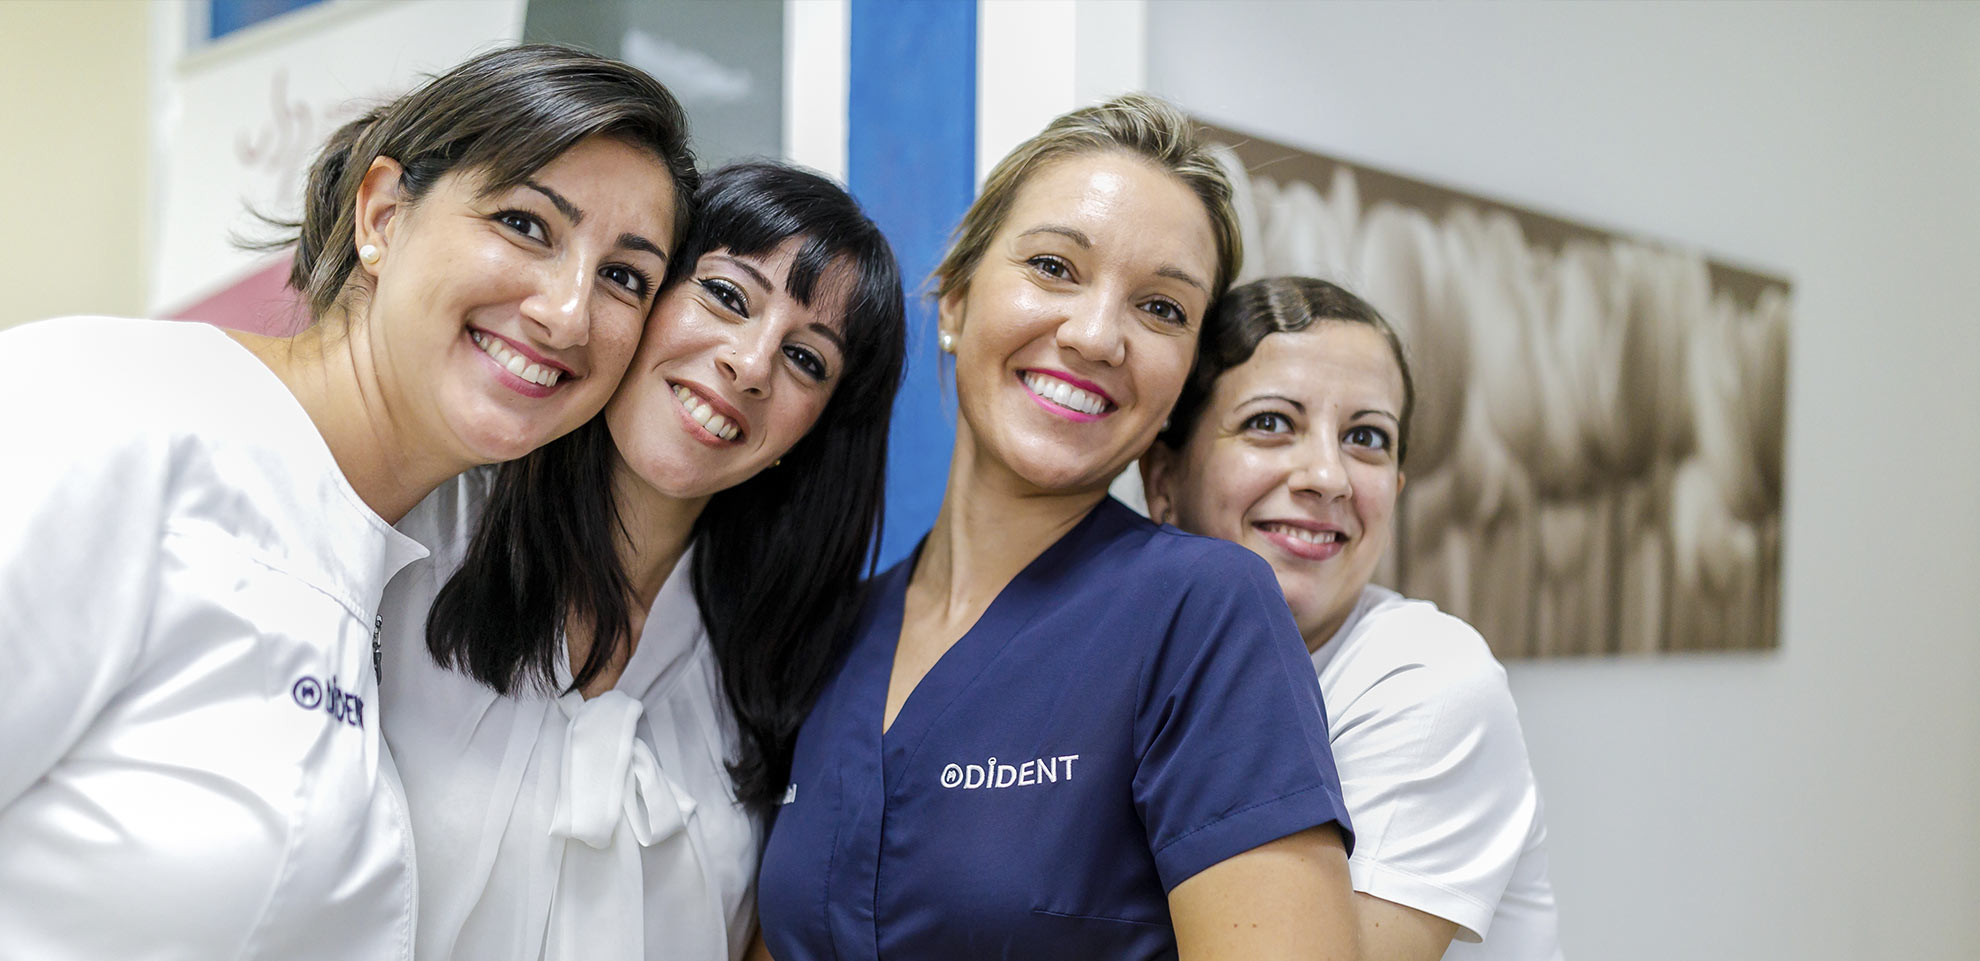 equipo odident